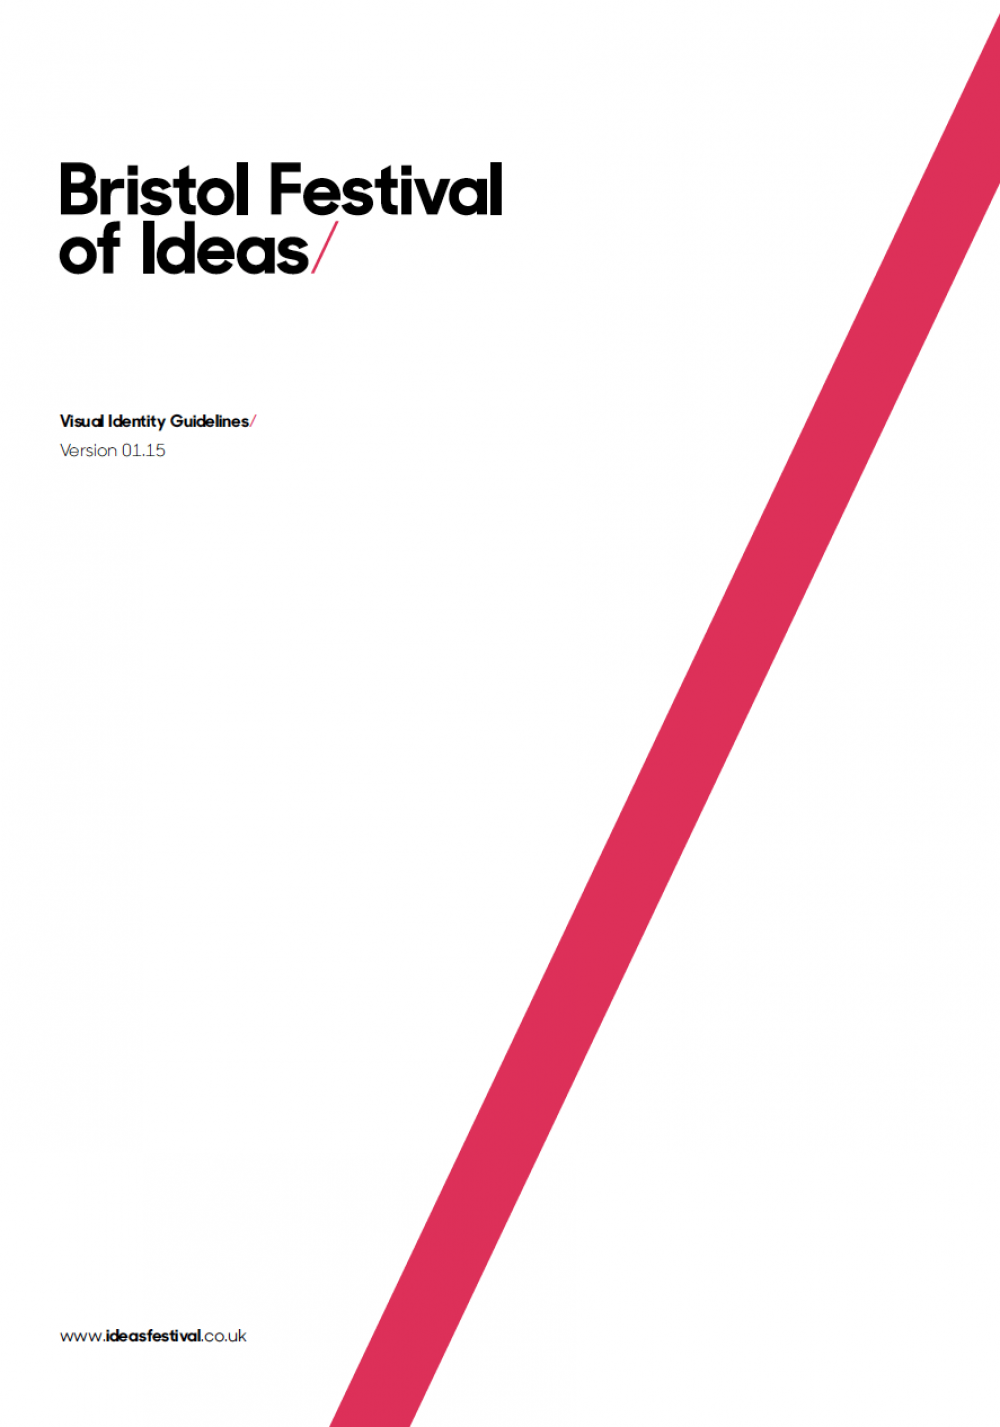 Festival of Ideas Branding Cover